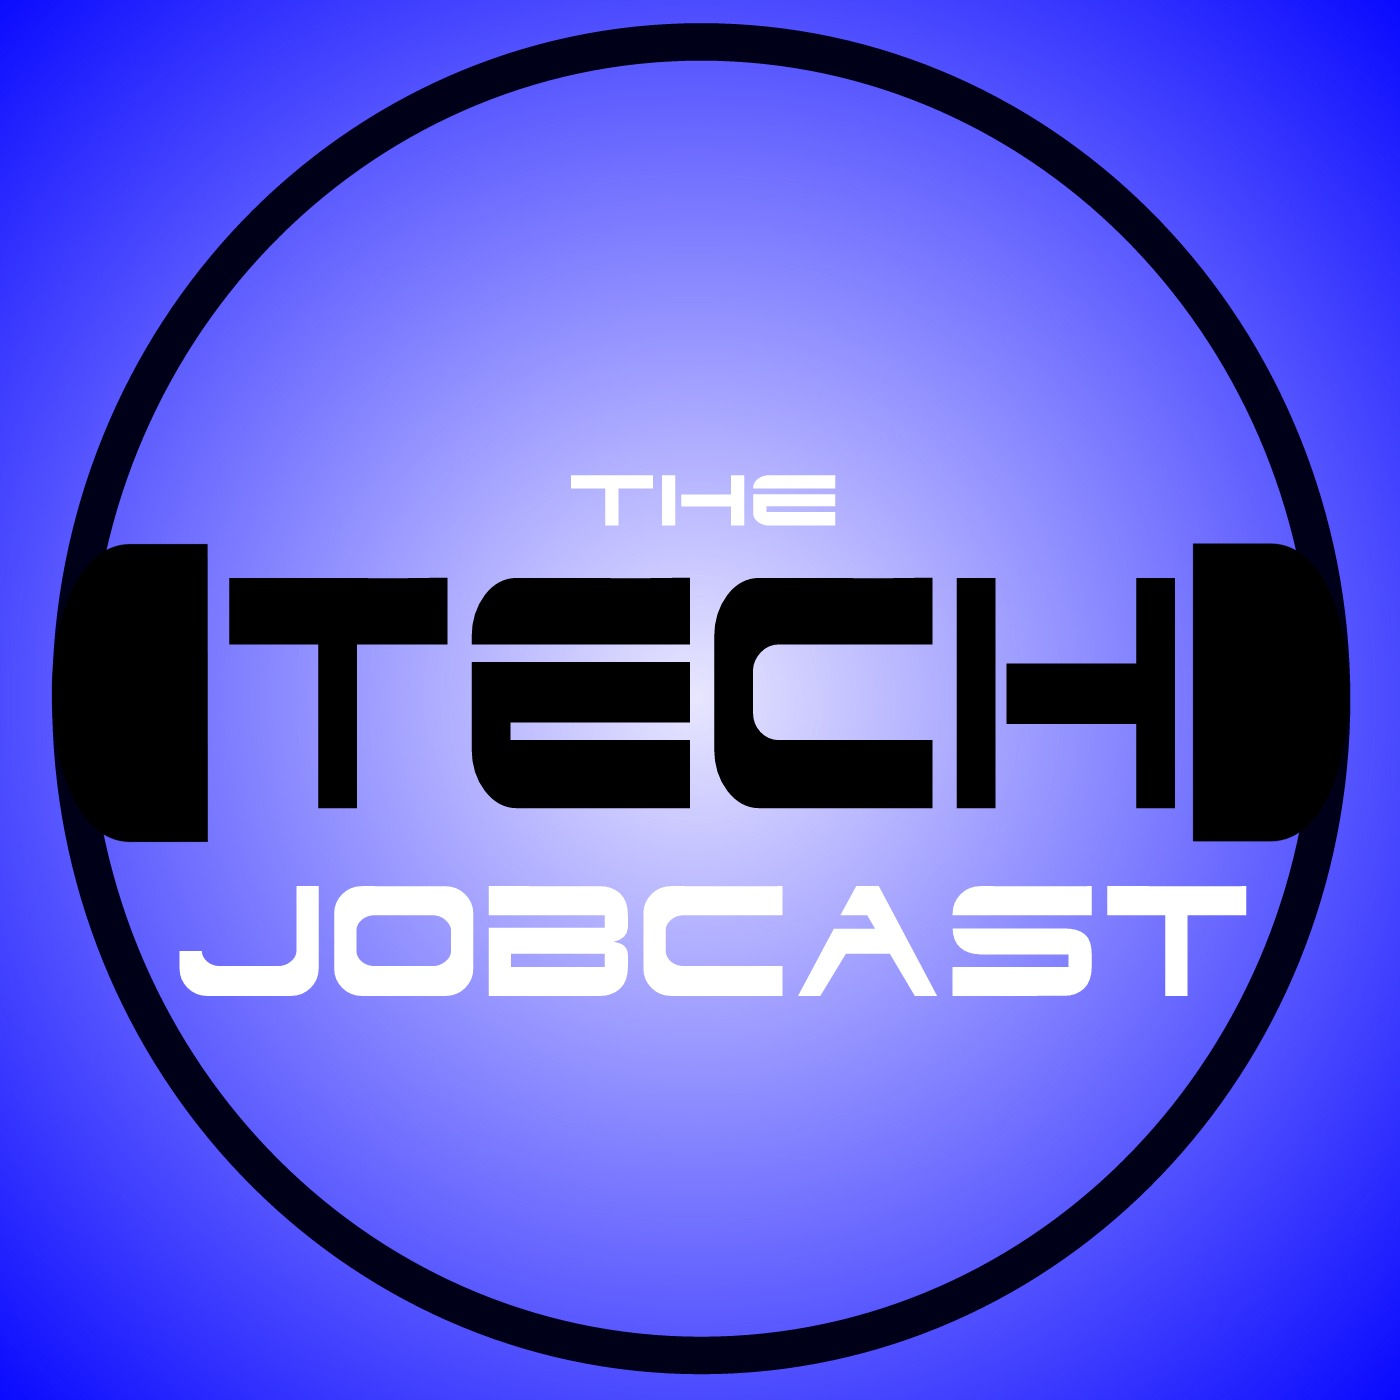 IT Job listings for the week of October 15, 2017